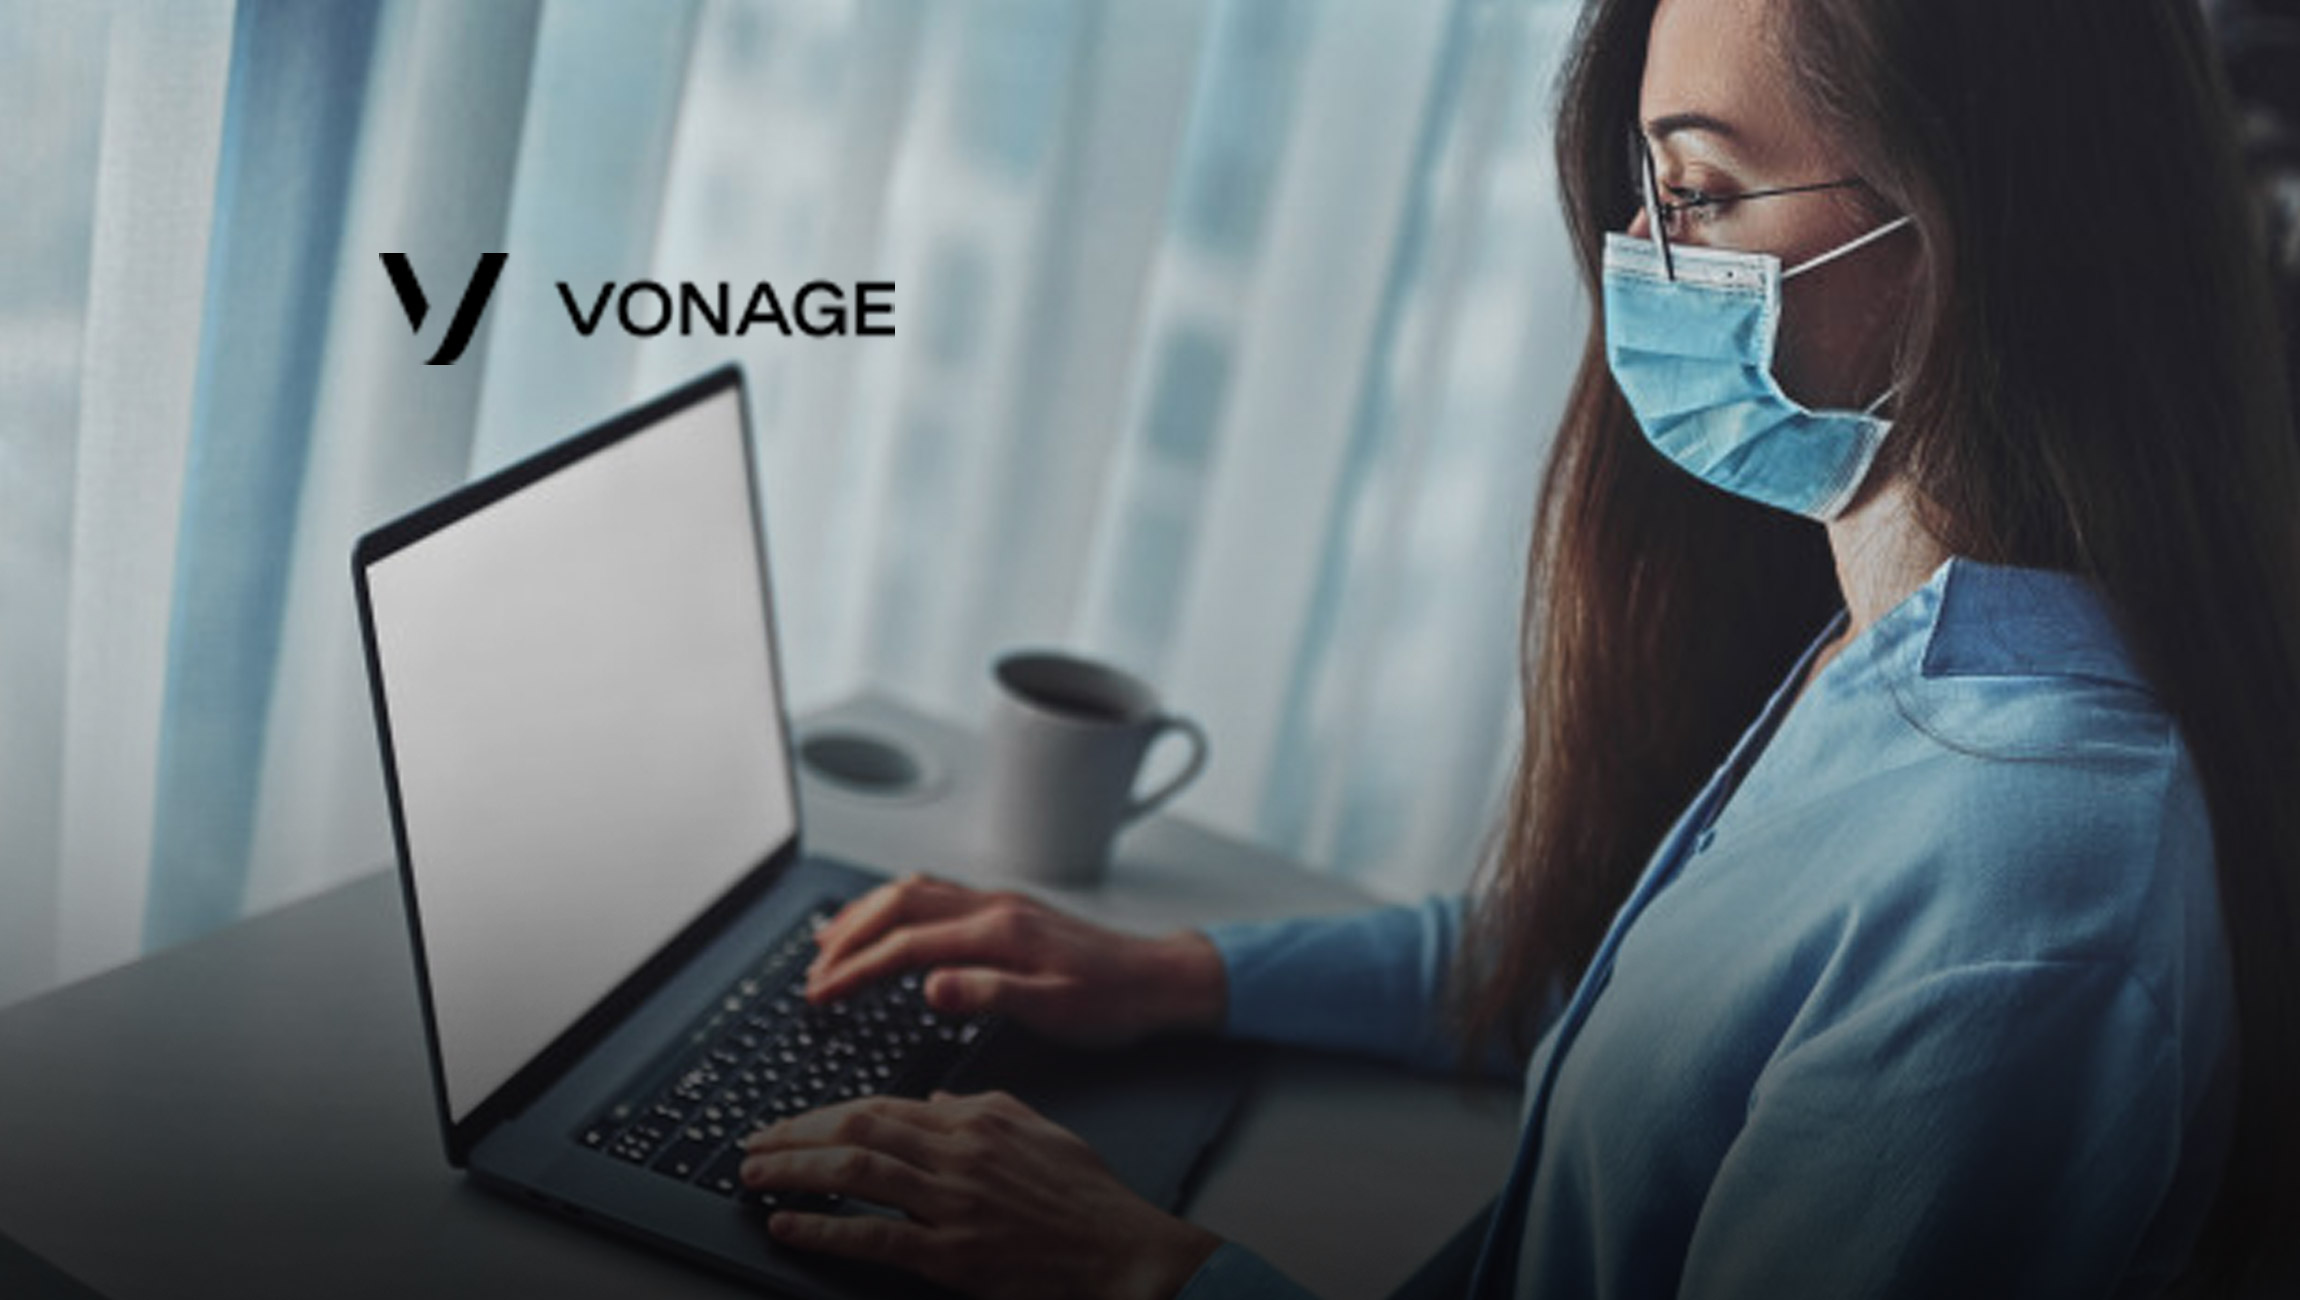 Vonage's Video API Experiences High Demand as Need for Remote Work, Telehealth and Online Education Grows in Light of Public Health Crisis